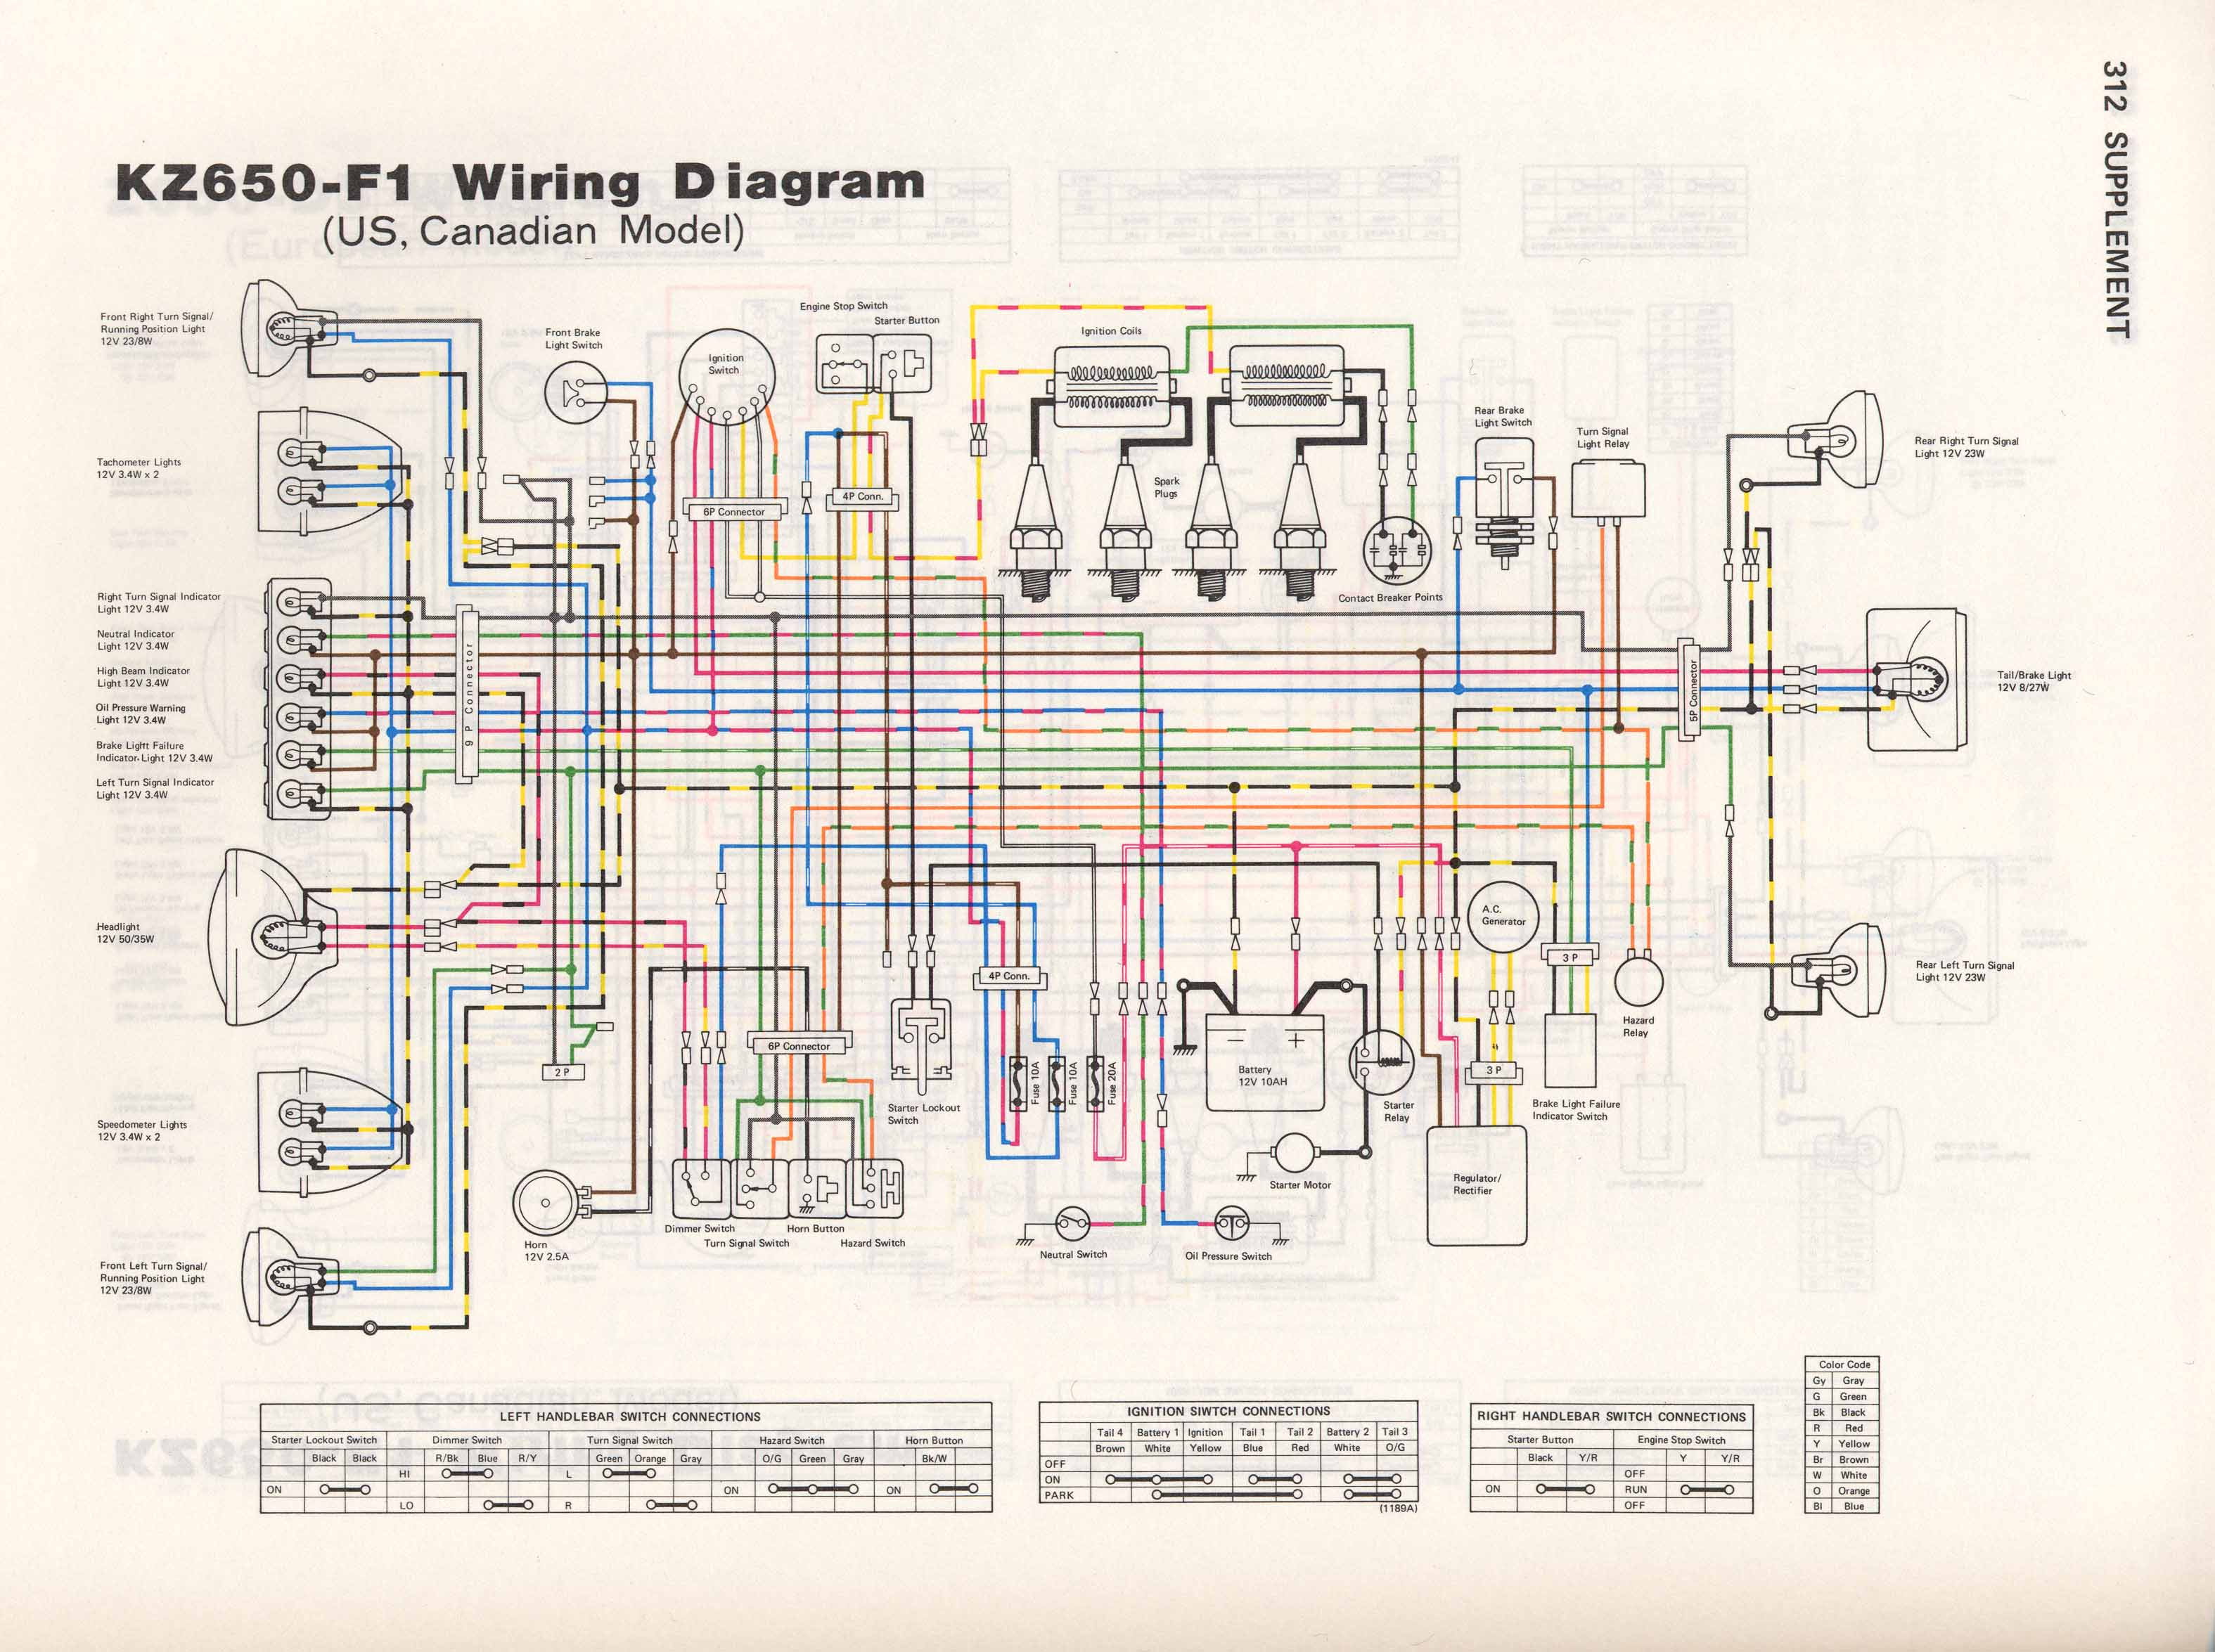 diagram kz650 parts diagram wiring diagram schematic circuitkz650info wiring diagrams